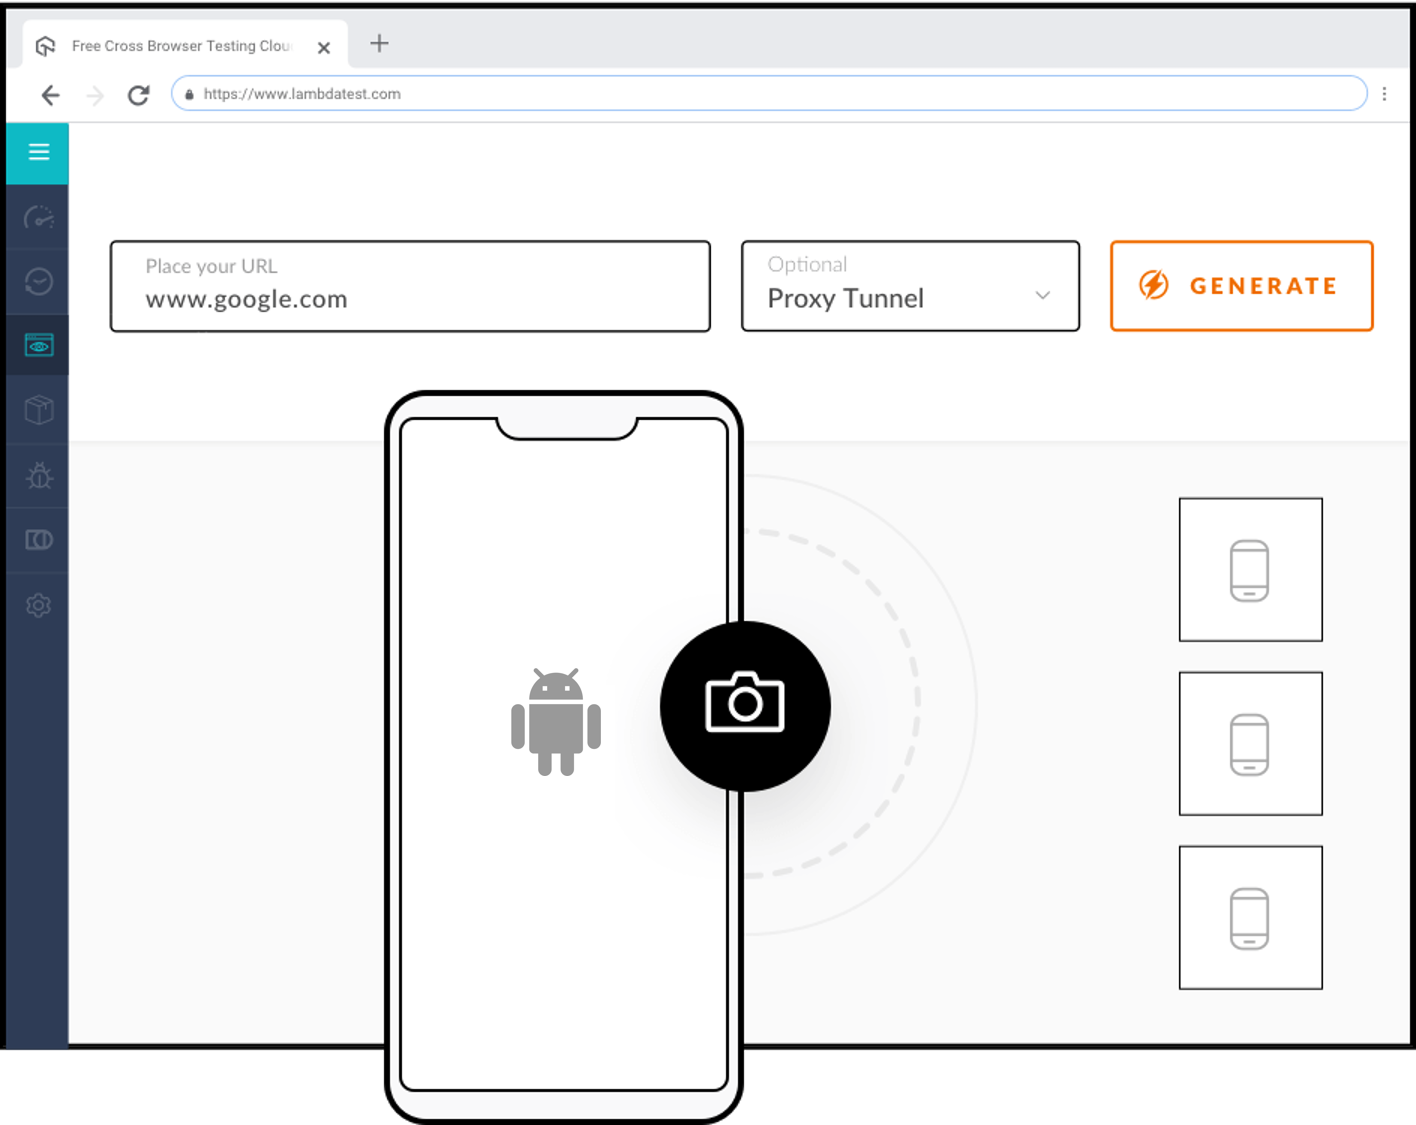 Cross Browser Testing on Android Mobile Browsers